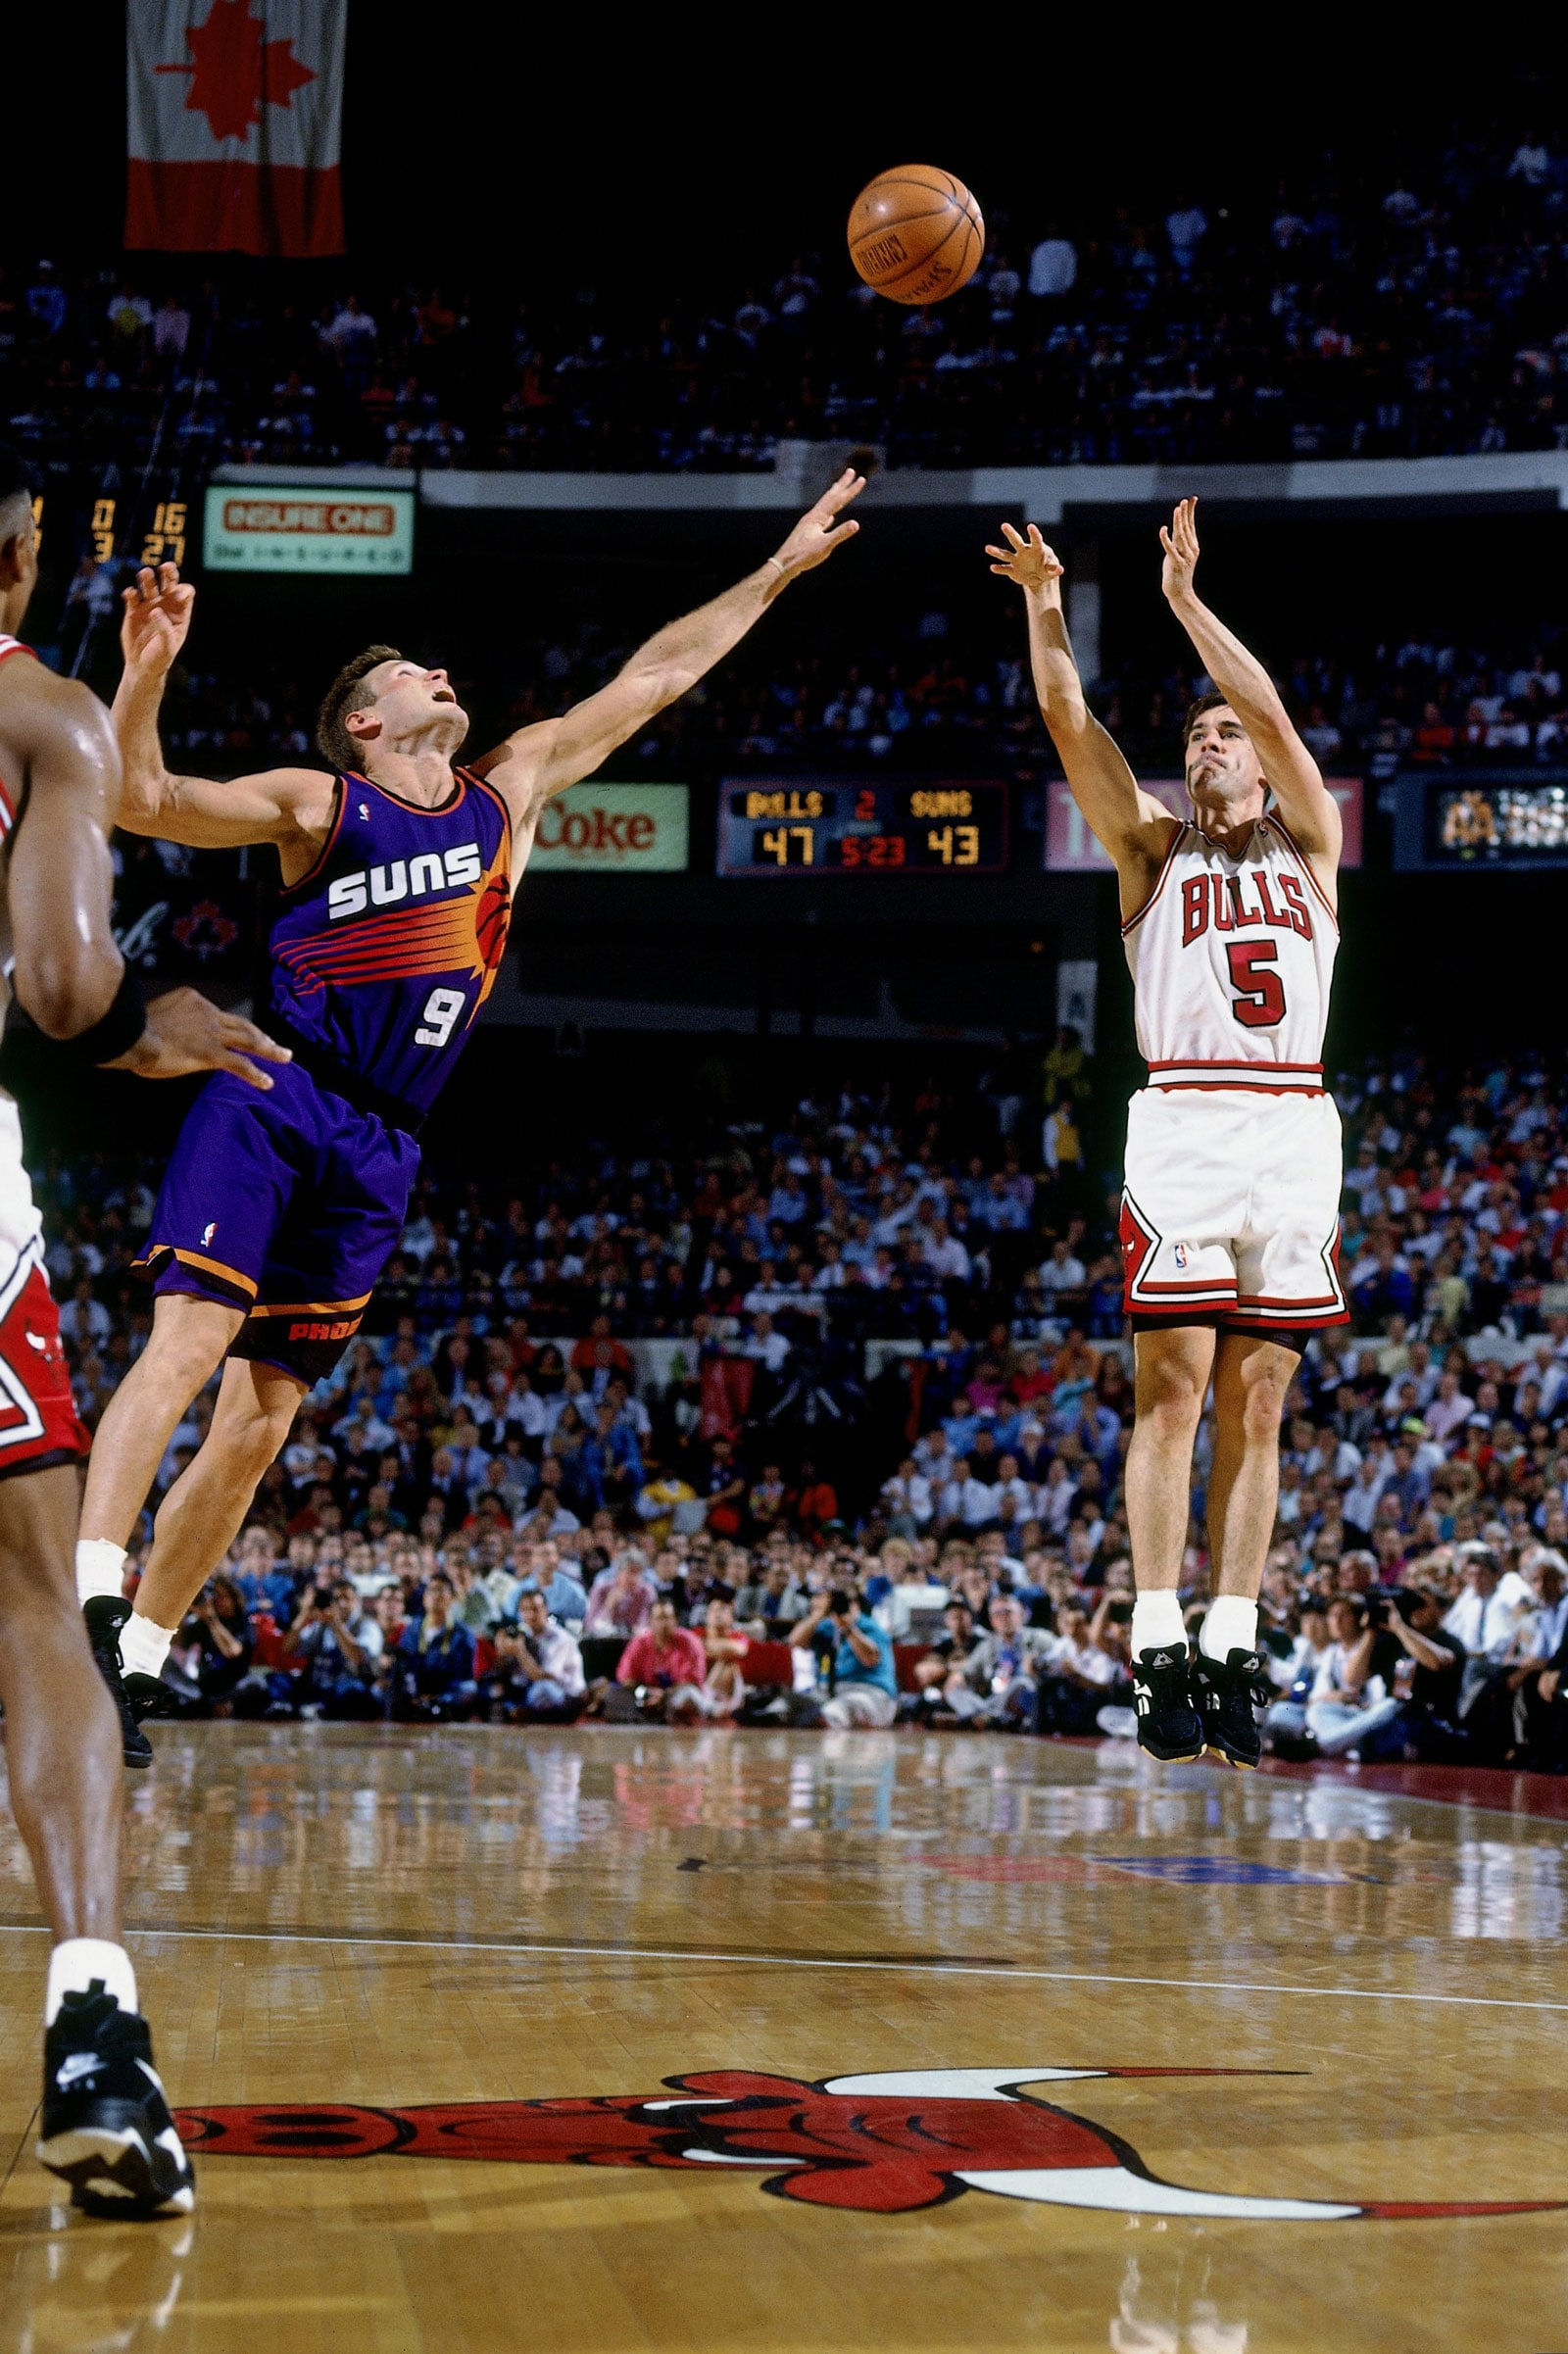 John Paxson #5 of the Chicago Bulls attempts a shot against Dan Majerle #9 of the Phoenix Suns in Game Four of the 1993 NBA Finals on June 16, 1993 at the Chicago Stadium in Chicago, Illinois. The Bulls won 111-105